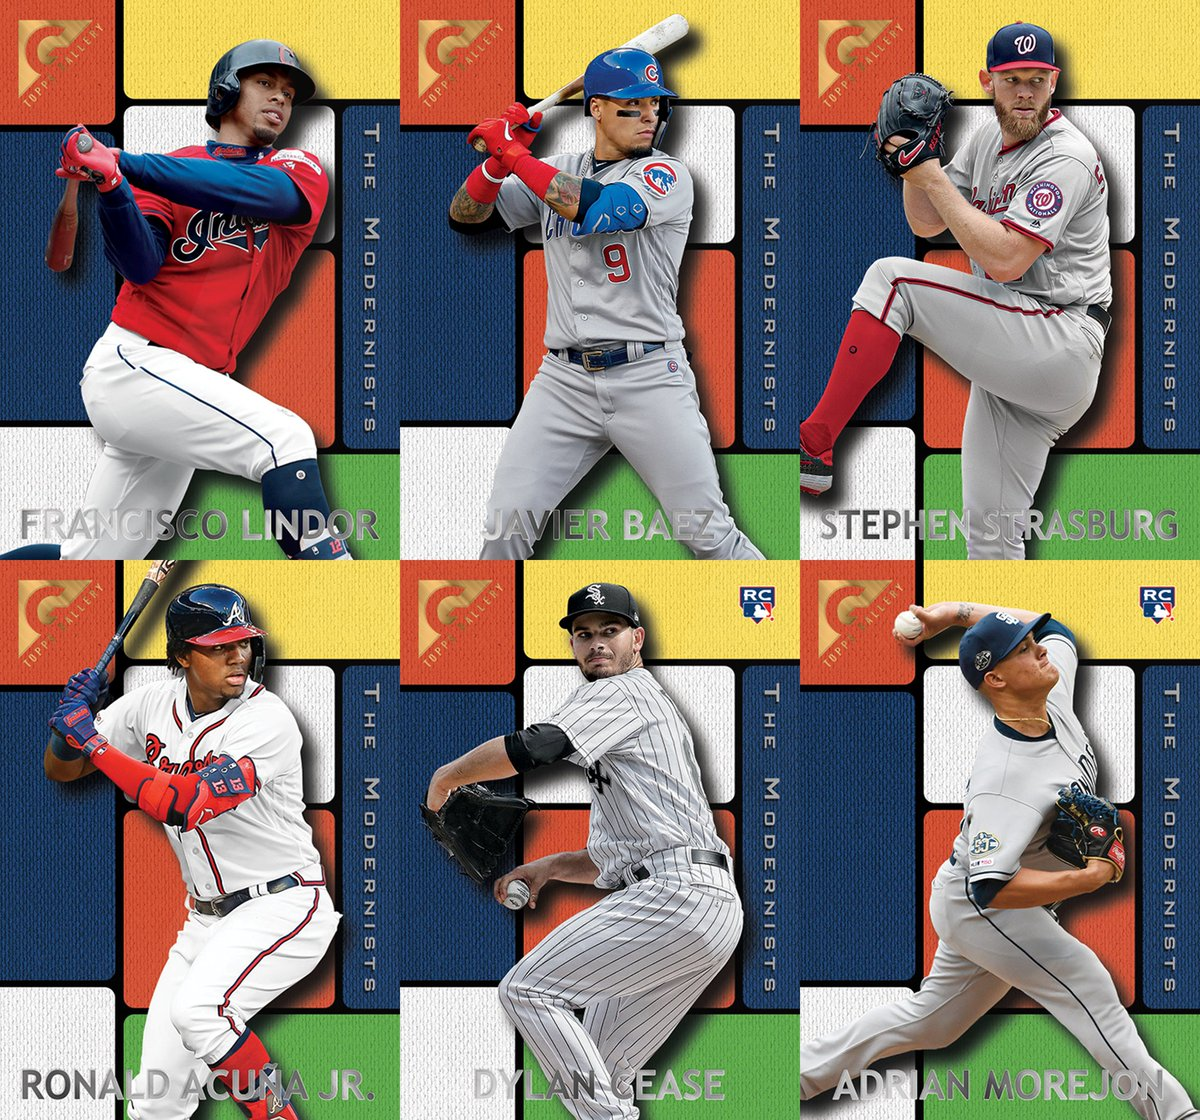 Week 8 of the #ToppsThrowbackThursday set features the 1996 Topps Gallery - The Modernist design.  #43 Francisco Lindor, Indians #44 Javier Baez, Cubs #45 Stephen Strasburg, Nationals #46 Ronald Acuña Jr., Braves #47 Dylan Cease, White Sox (RC) #48 Adrian Morejon, Padres (RC)